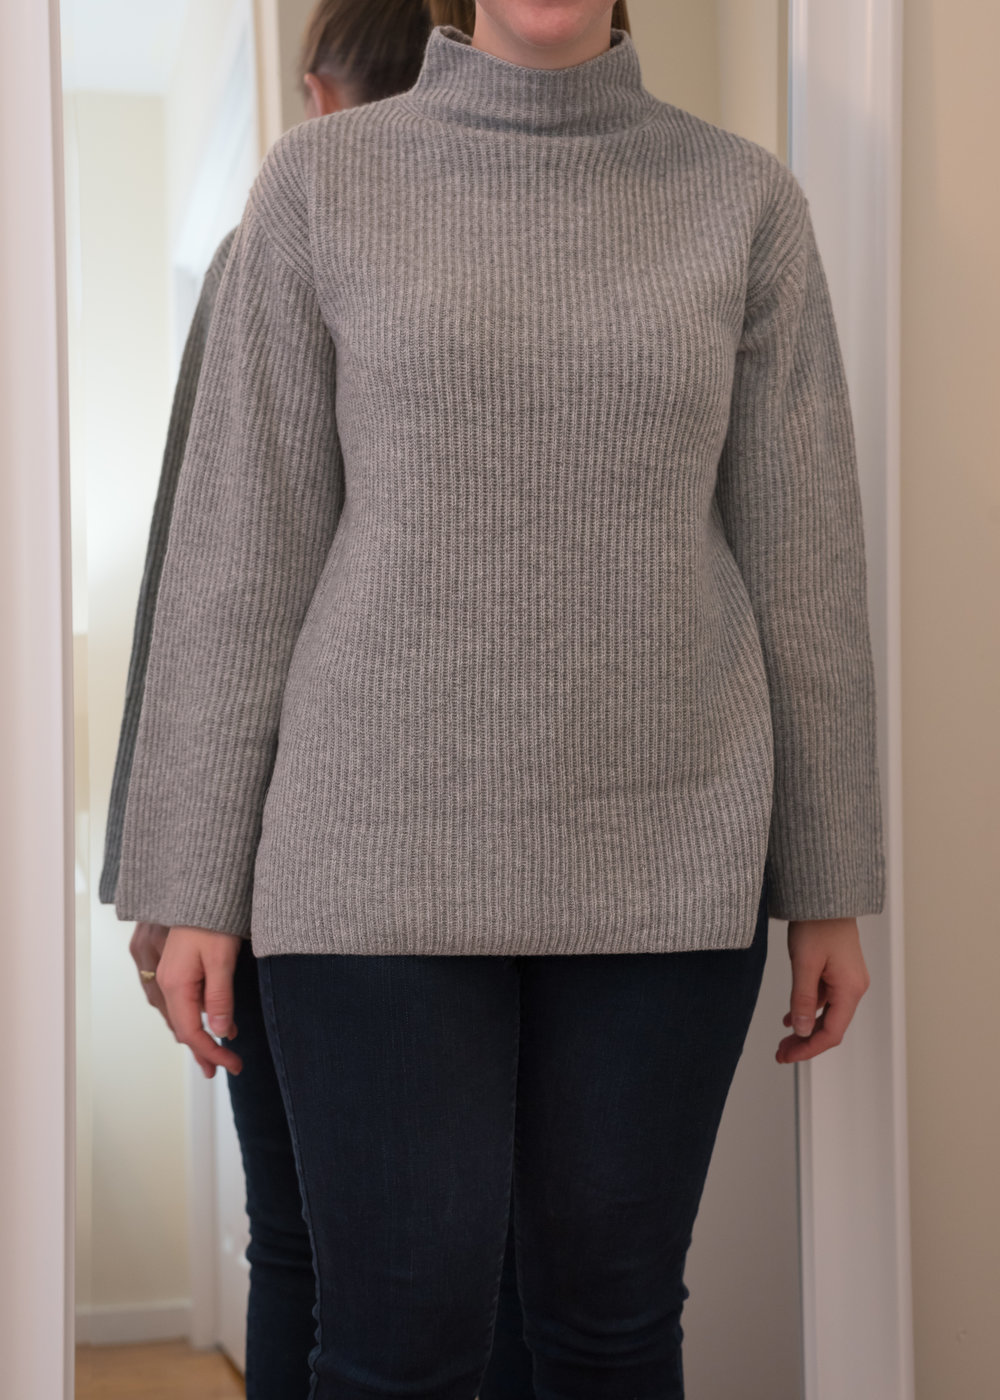 Everlane Cashmere Rib Mockneck Sweater - Size S - Front View